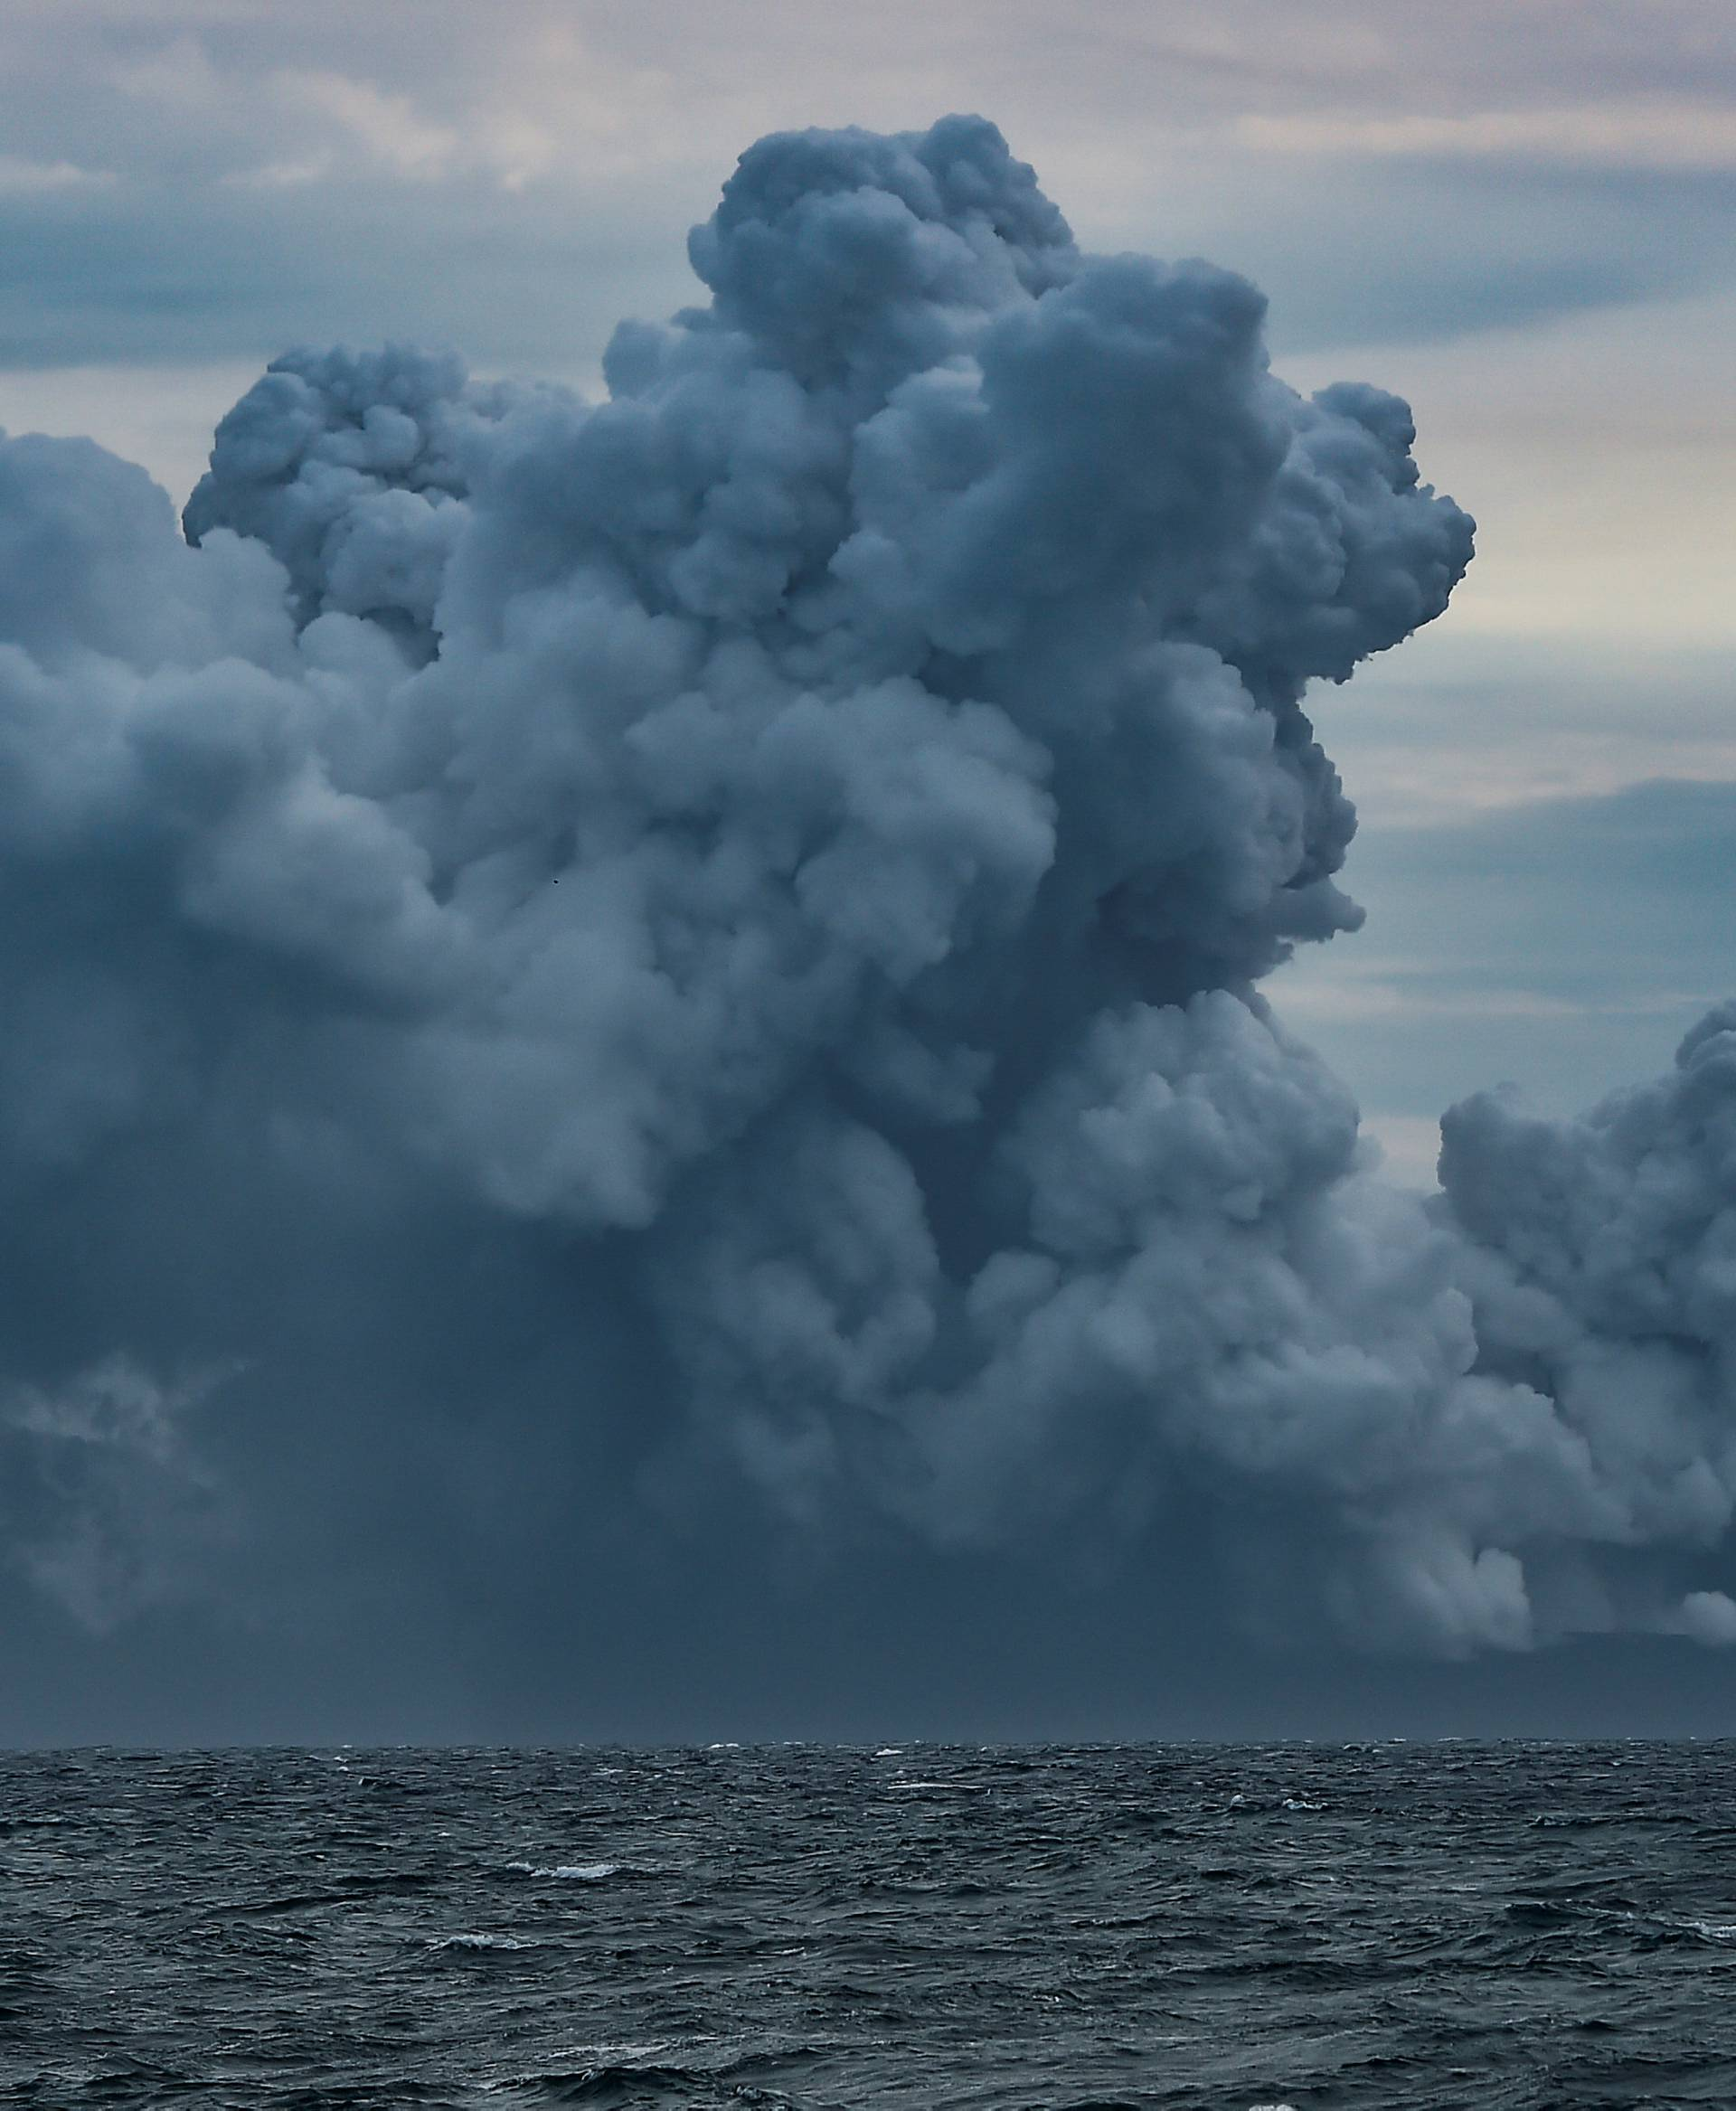 Mount Anak Krakatau volcano spews hot ash during an eruption as seen from Indonesian Naval Patrol Boat, KRI Torani 860, at Sunda strait in Banten